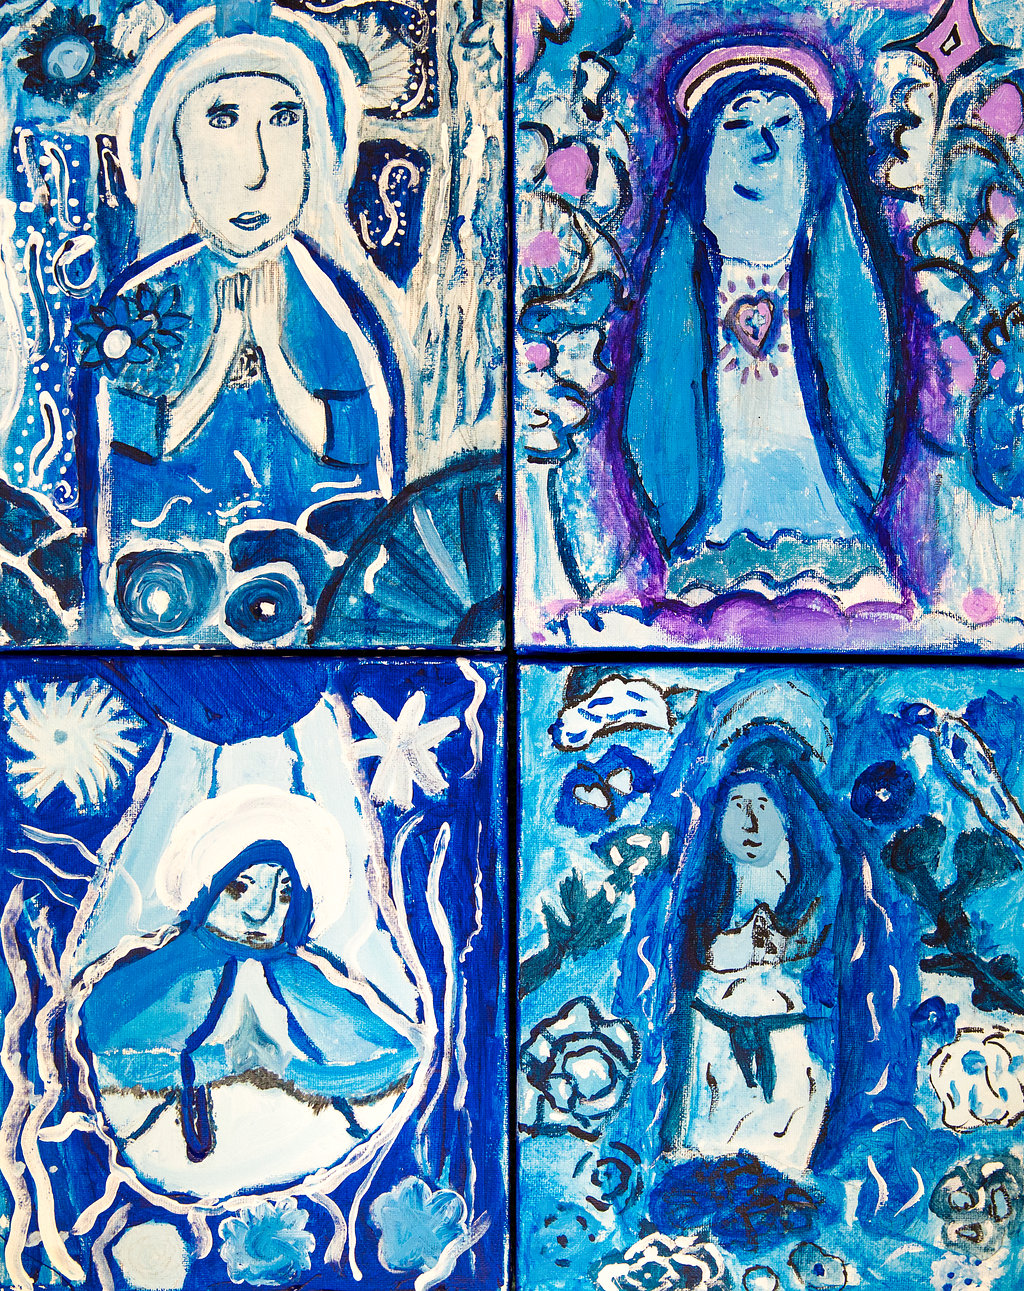 Saint Mary in the style of the artist Marc Chagall by Year 6 - St Mary's CE Primary School Herts